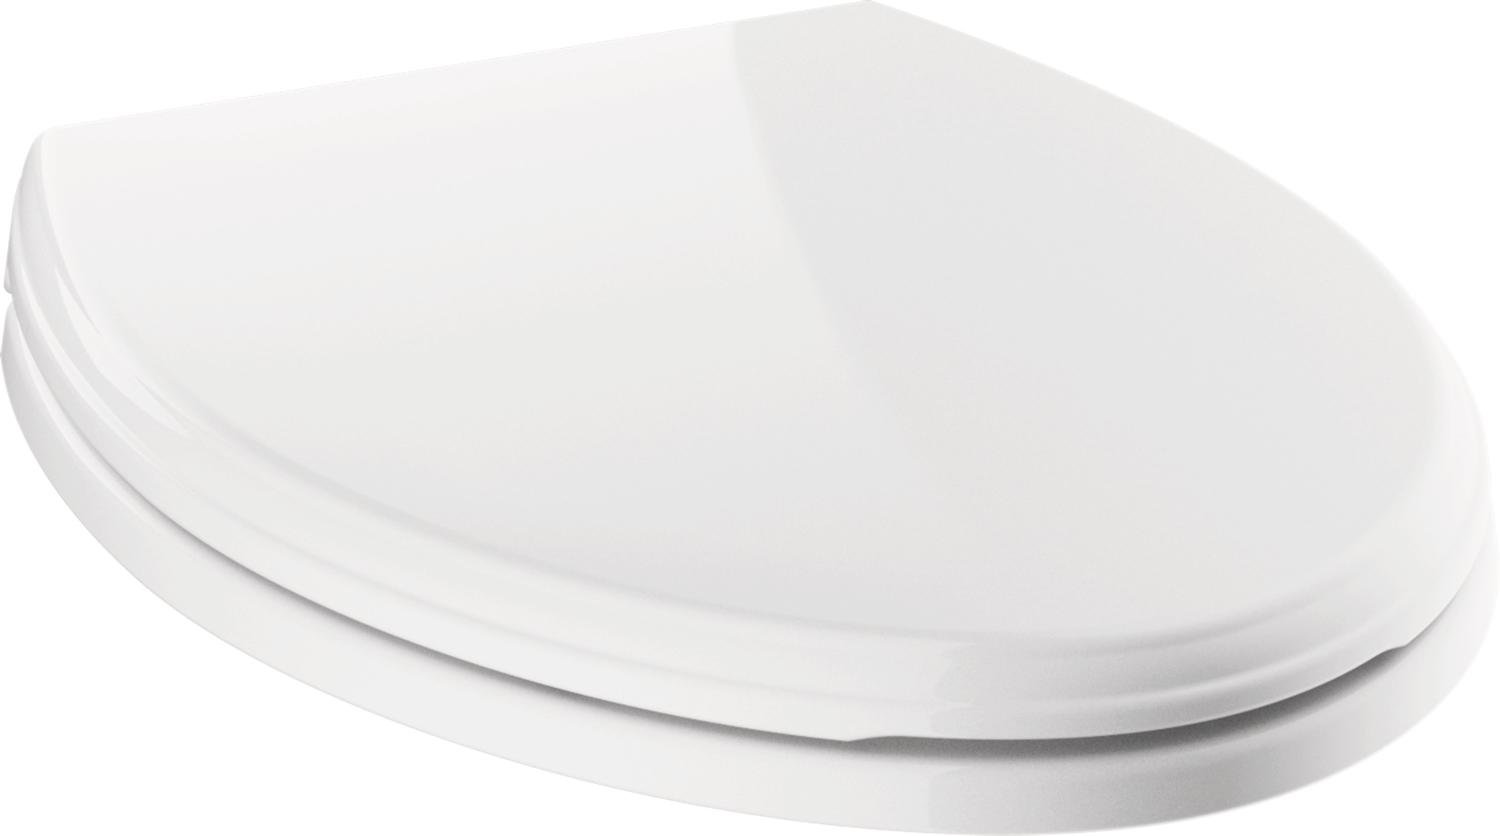 Delta Faucet 811901-WH Wycliffe Elongated Slow-Close Toilet Seat with Non-slip Seat Bumpers White